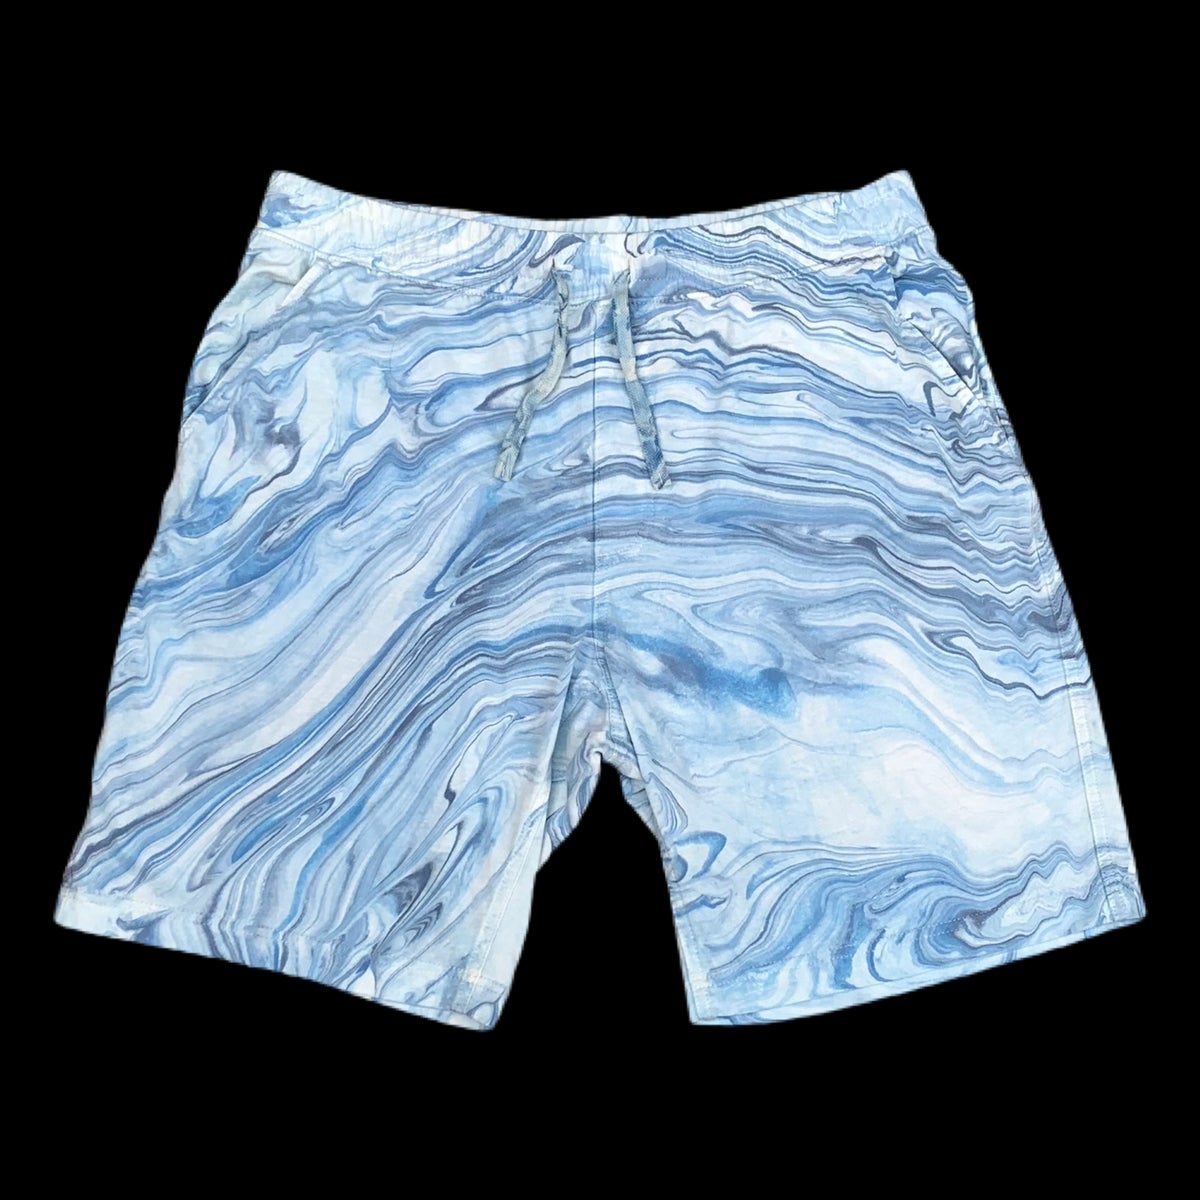 Blue Dream Hand Marble Dyed Unisex Jersey Shorts!